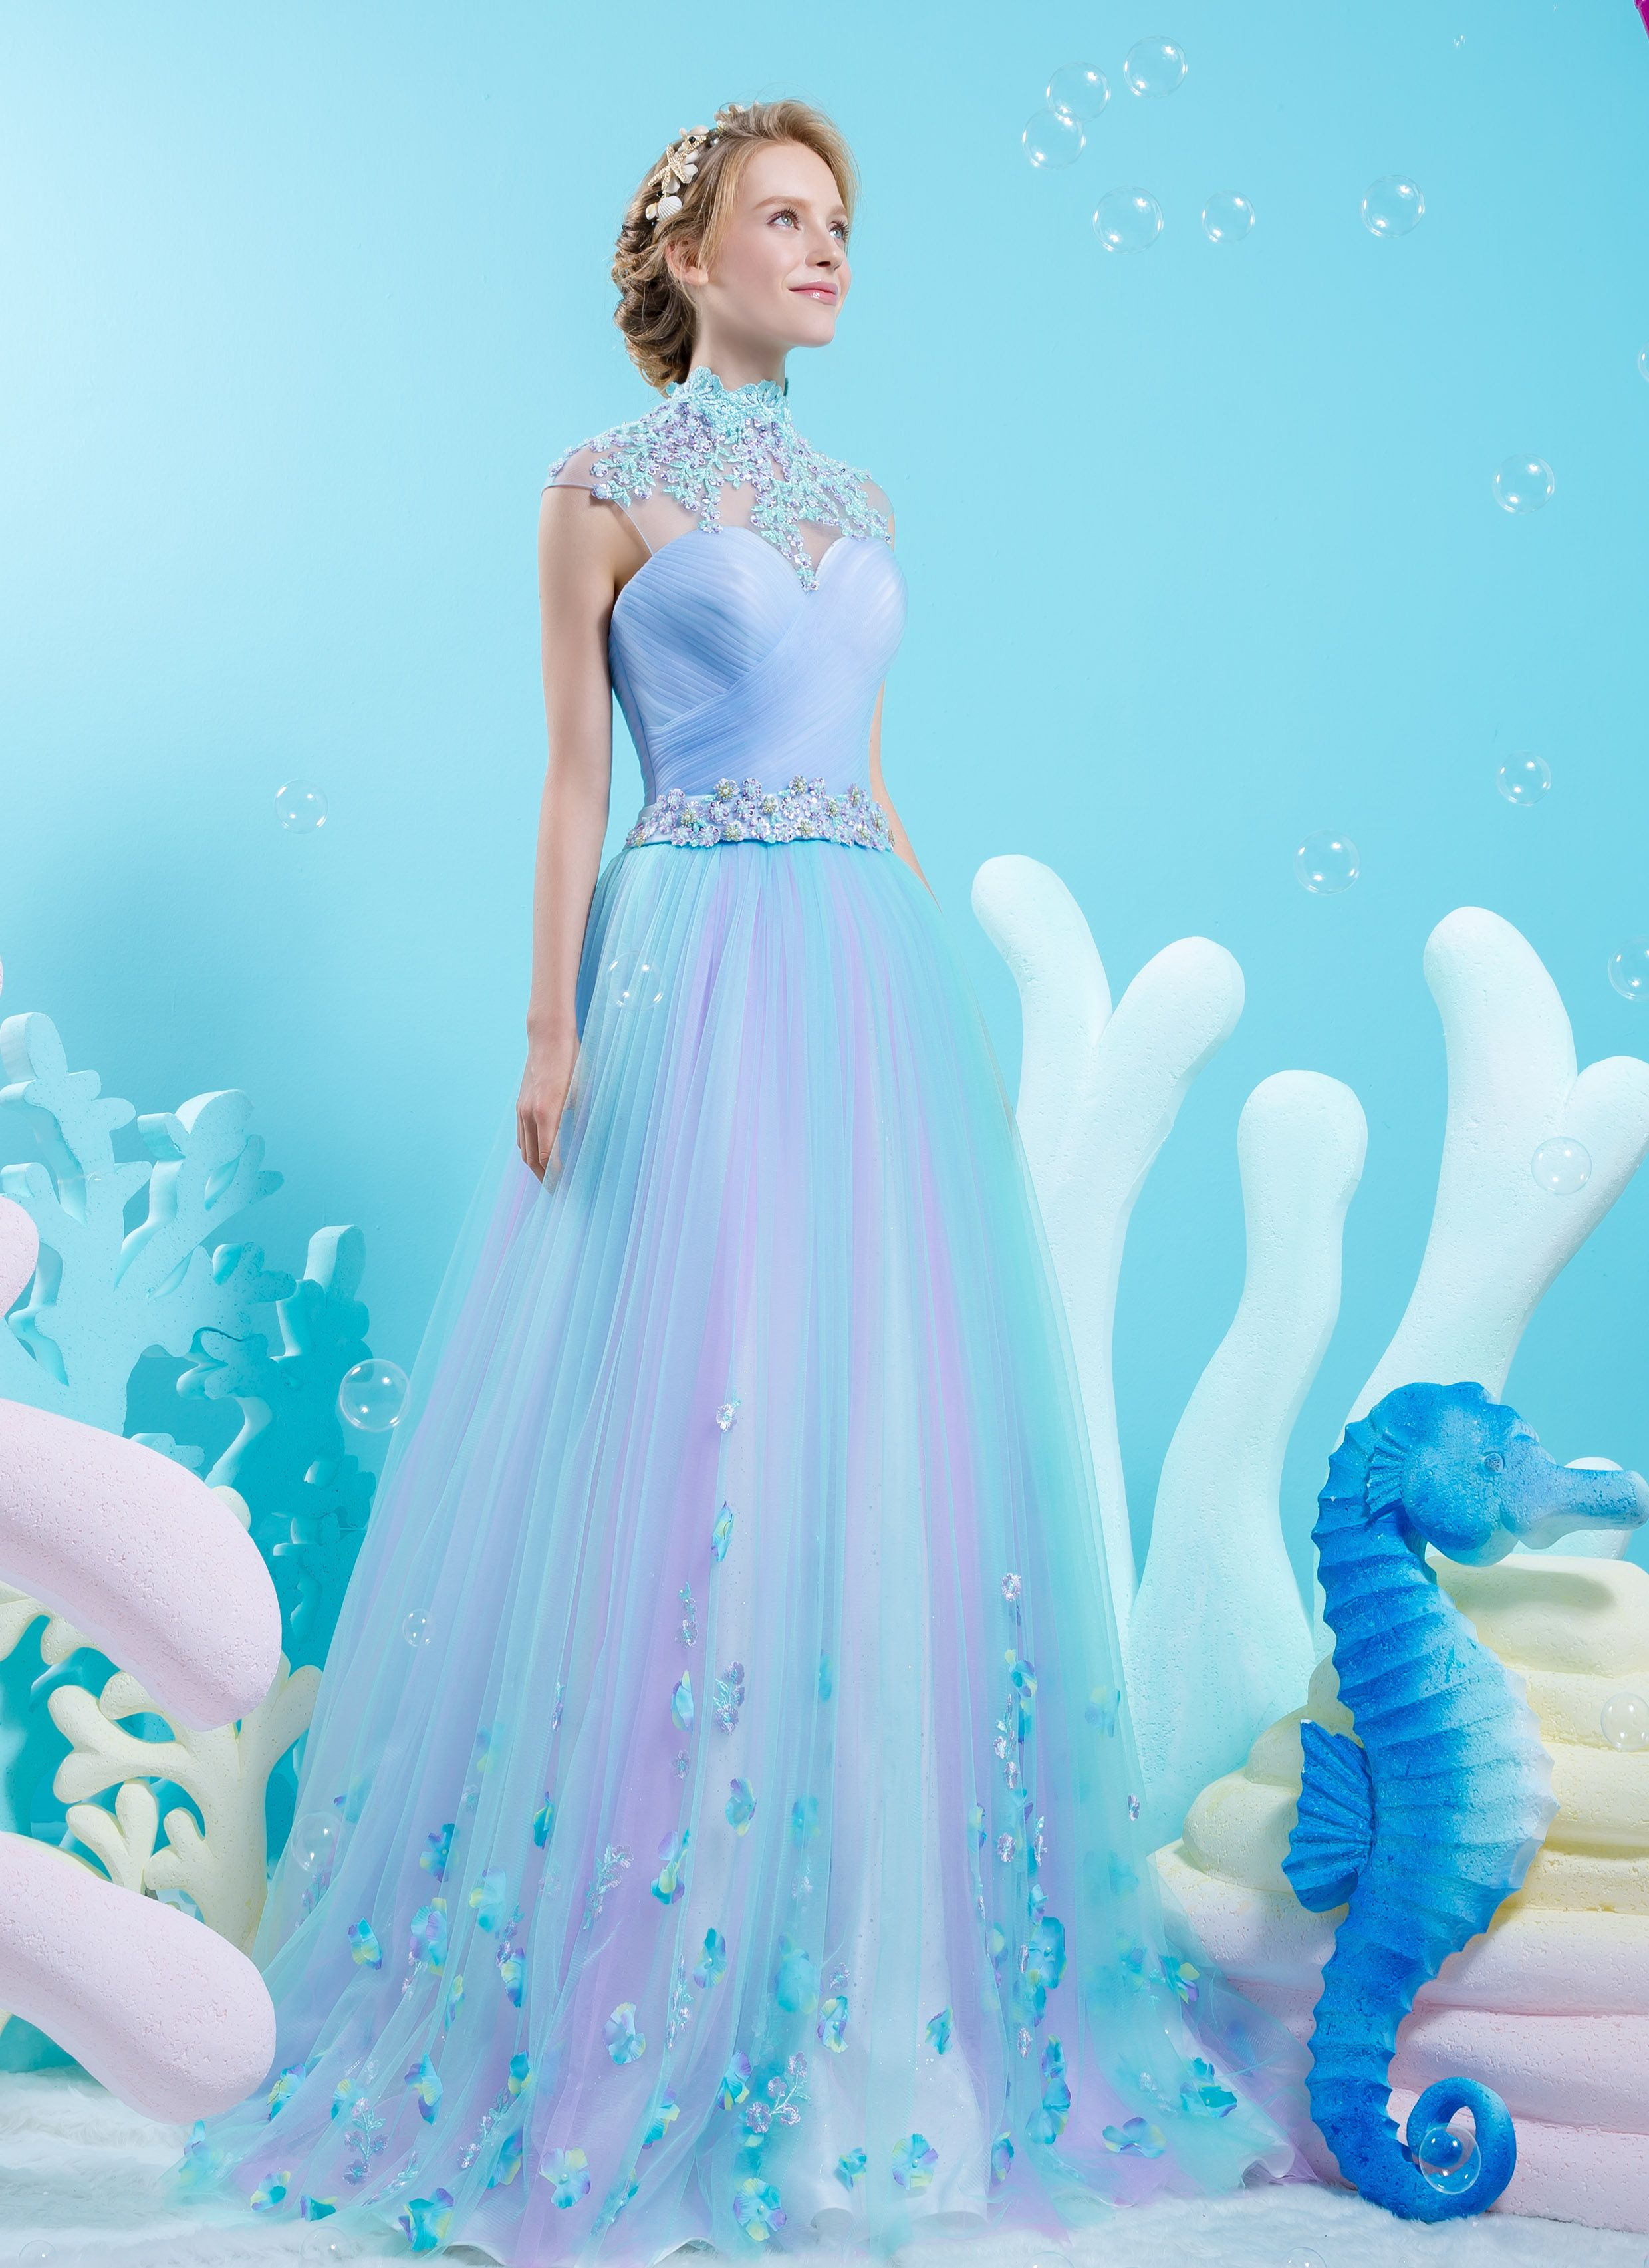 Ornate high neck A-line gown in cotton candy color | Wedding Dresses ...